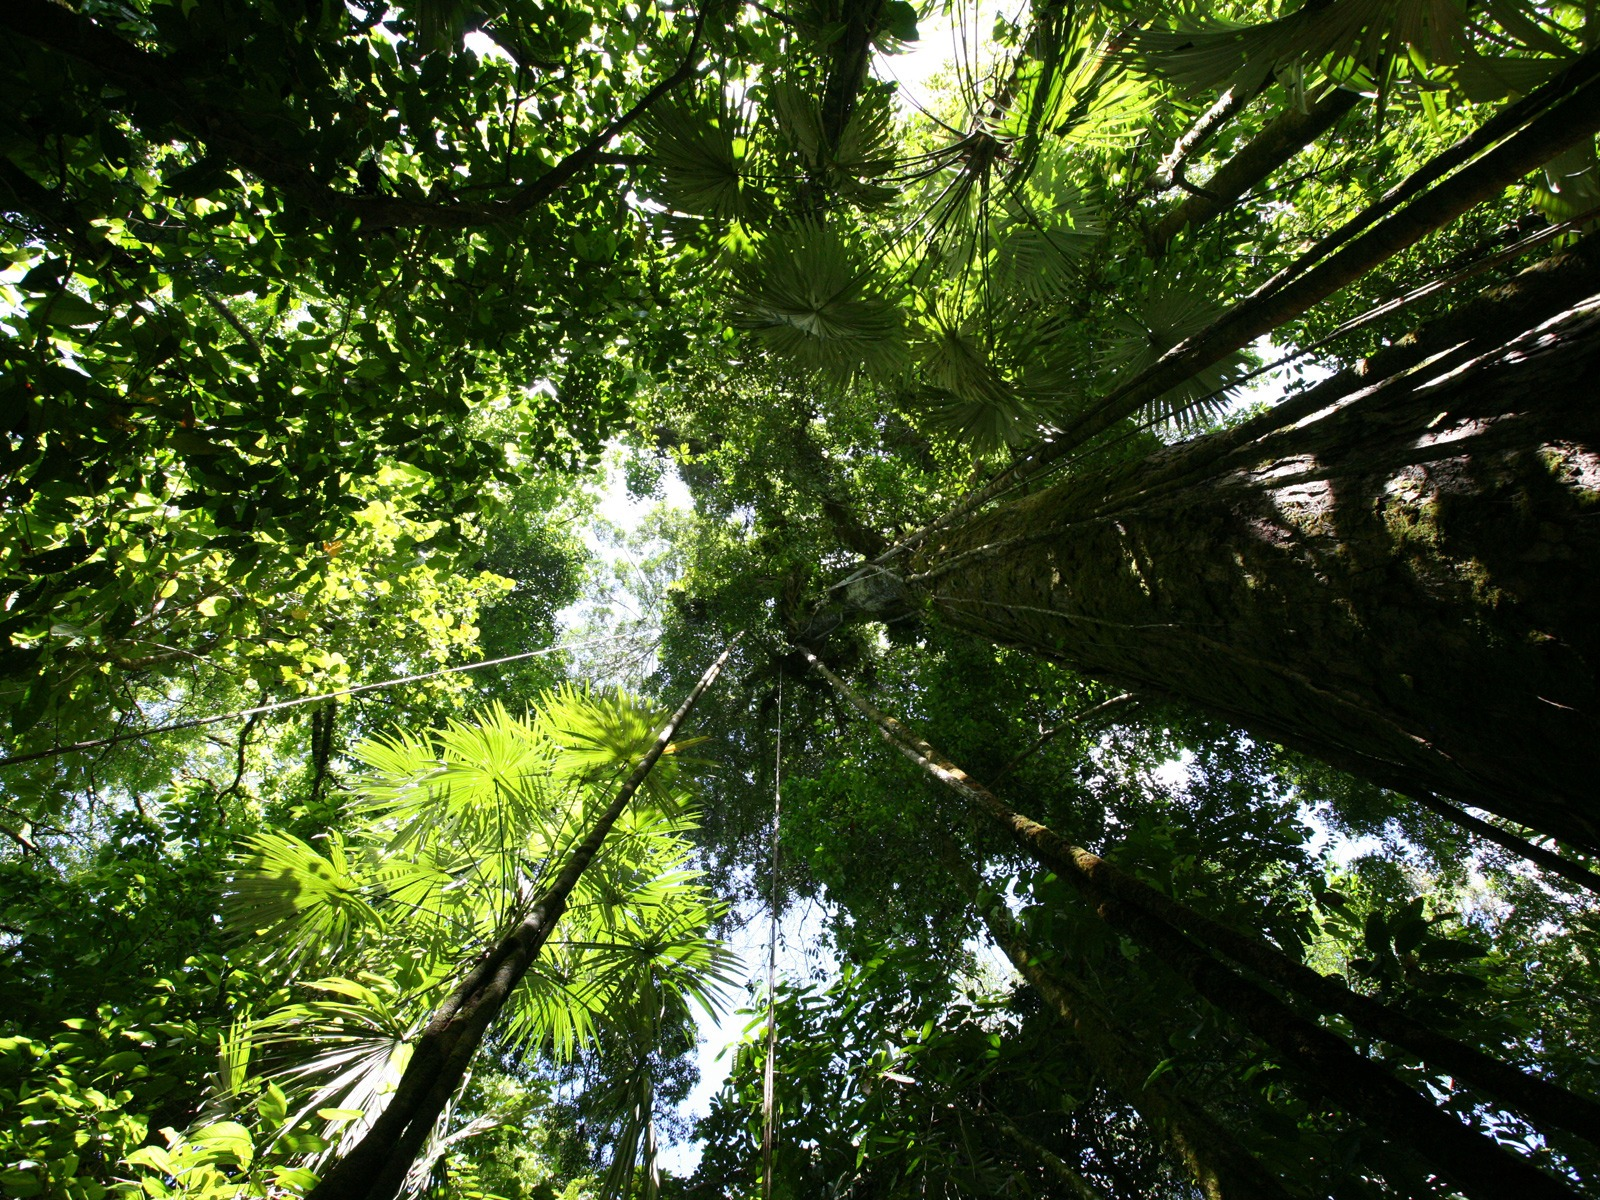 Rainforest canopy Wallpaper Plants Nature Wallpapers & Rainforest canopy Wallpaper Plants Nature Wallpapers in jpg format ...